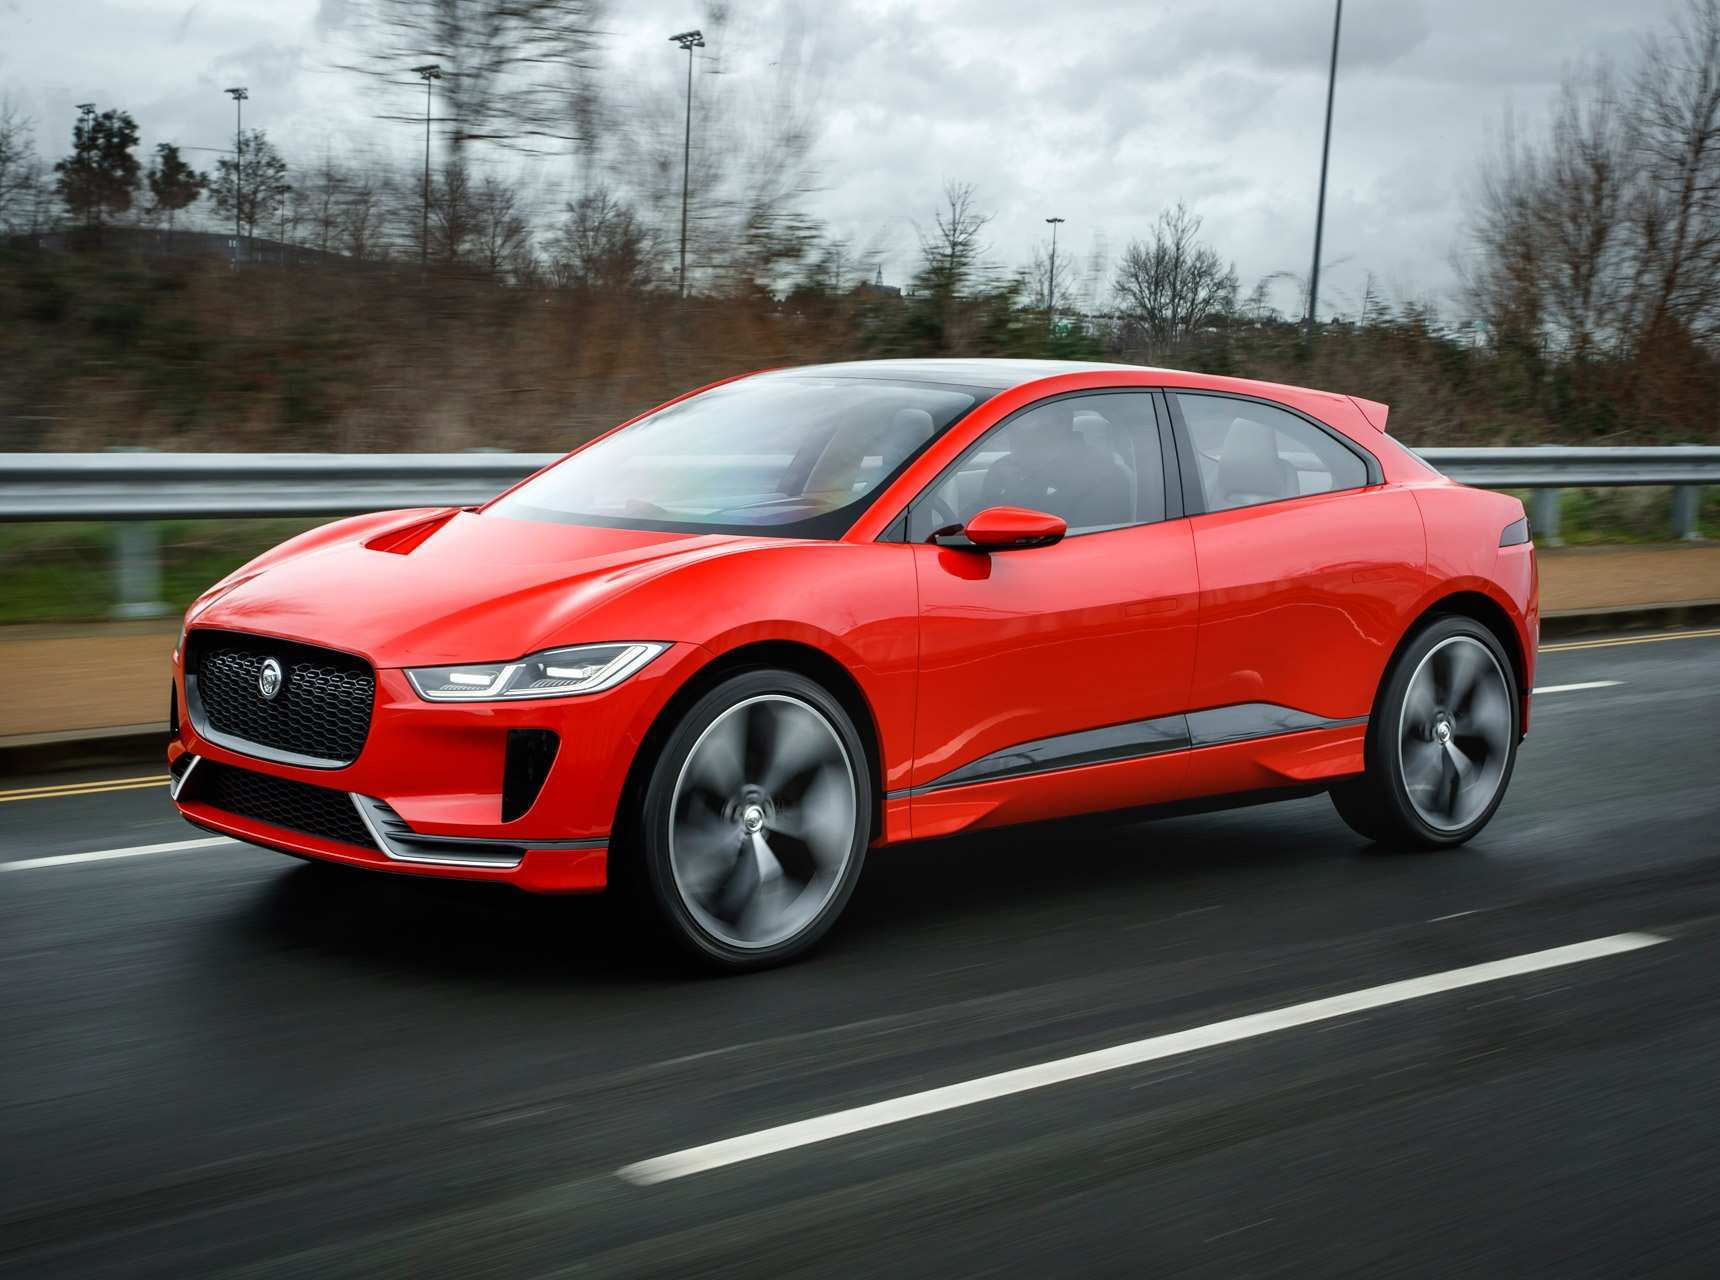 33 New Jaguar I Pace 2020 Updates Spesification